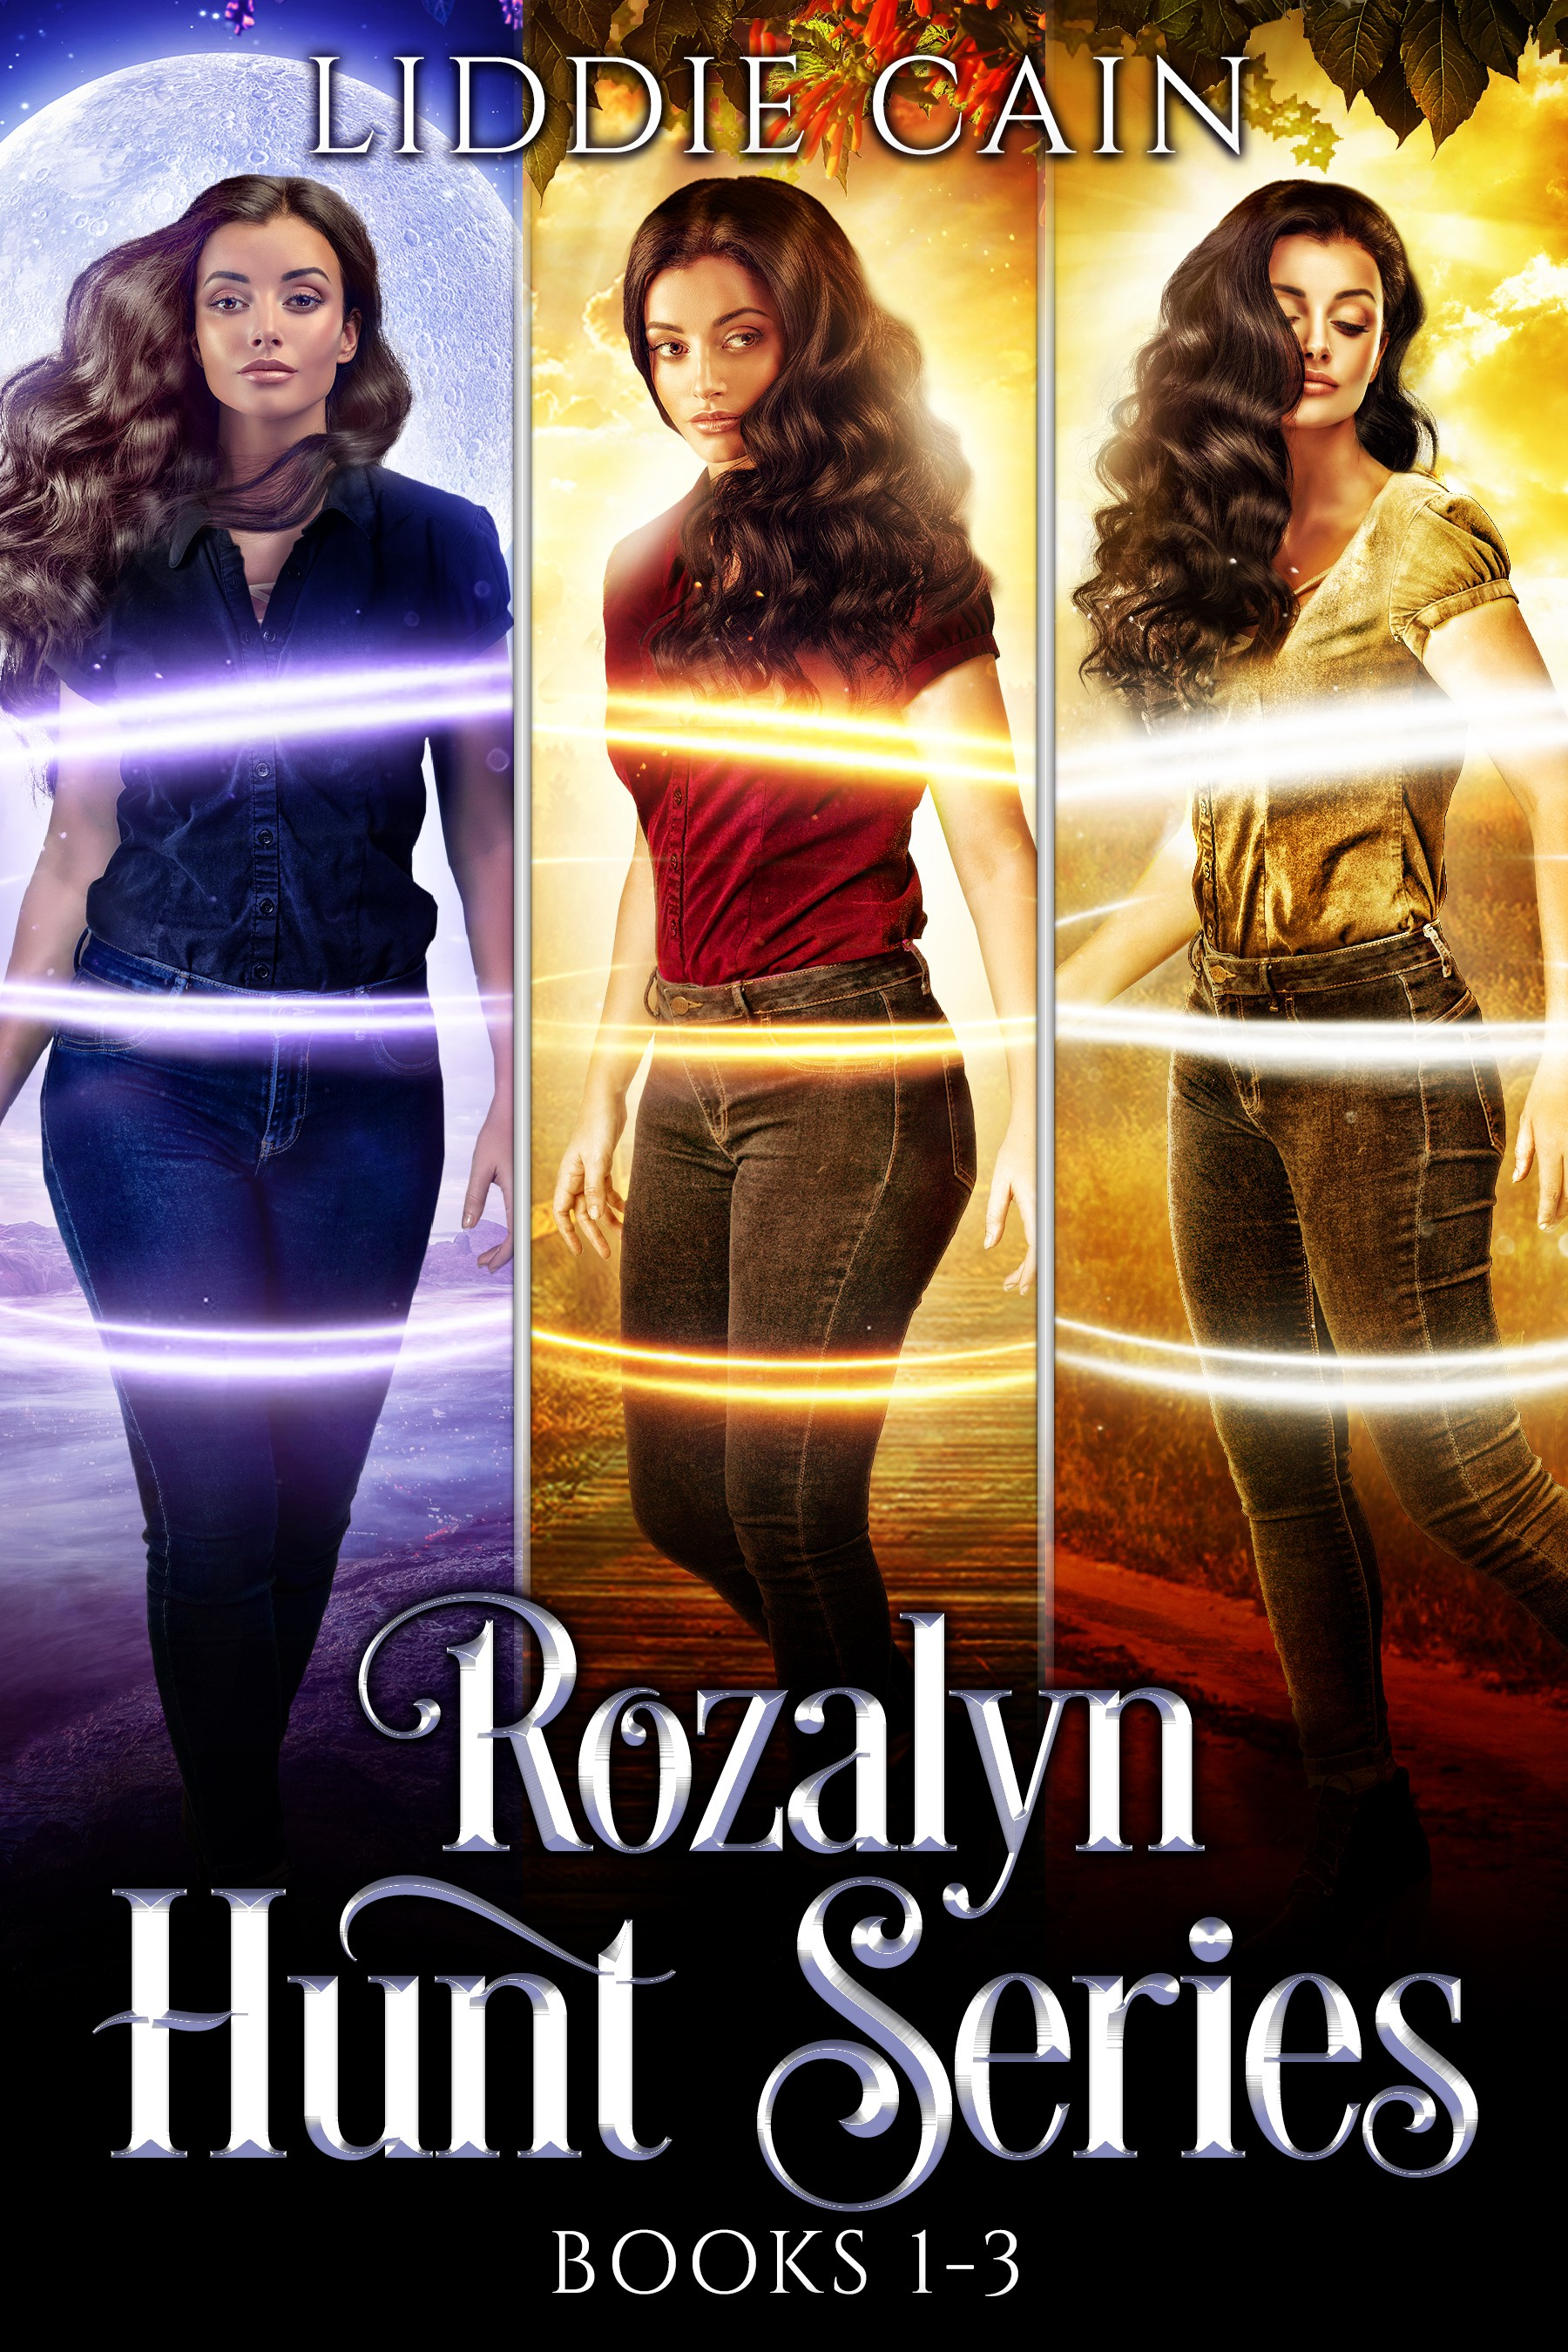 Box set for the Rozalyn Hunt Series